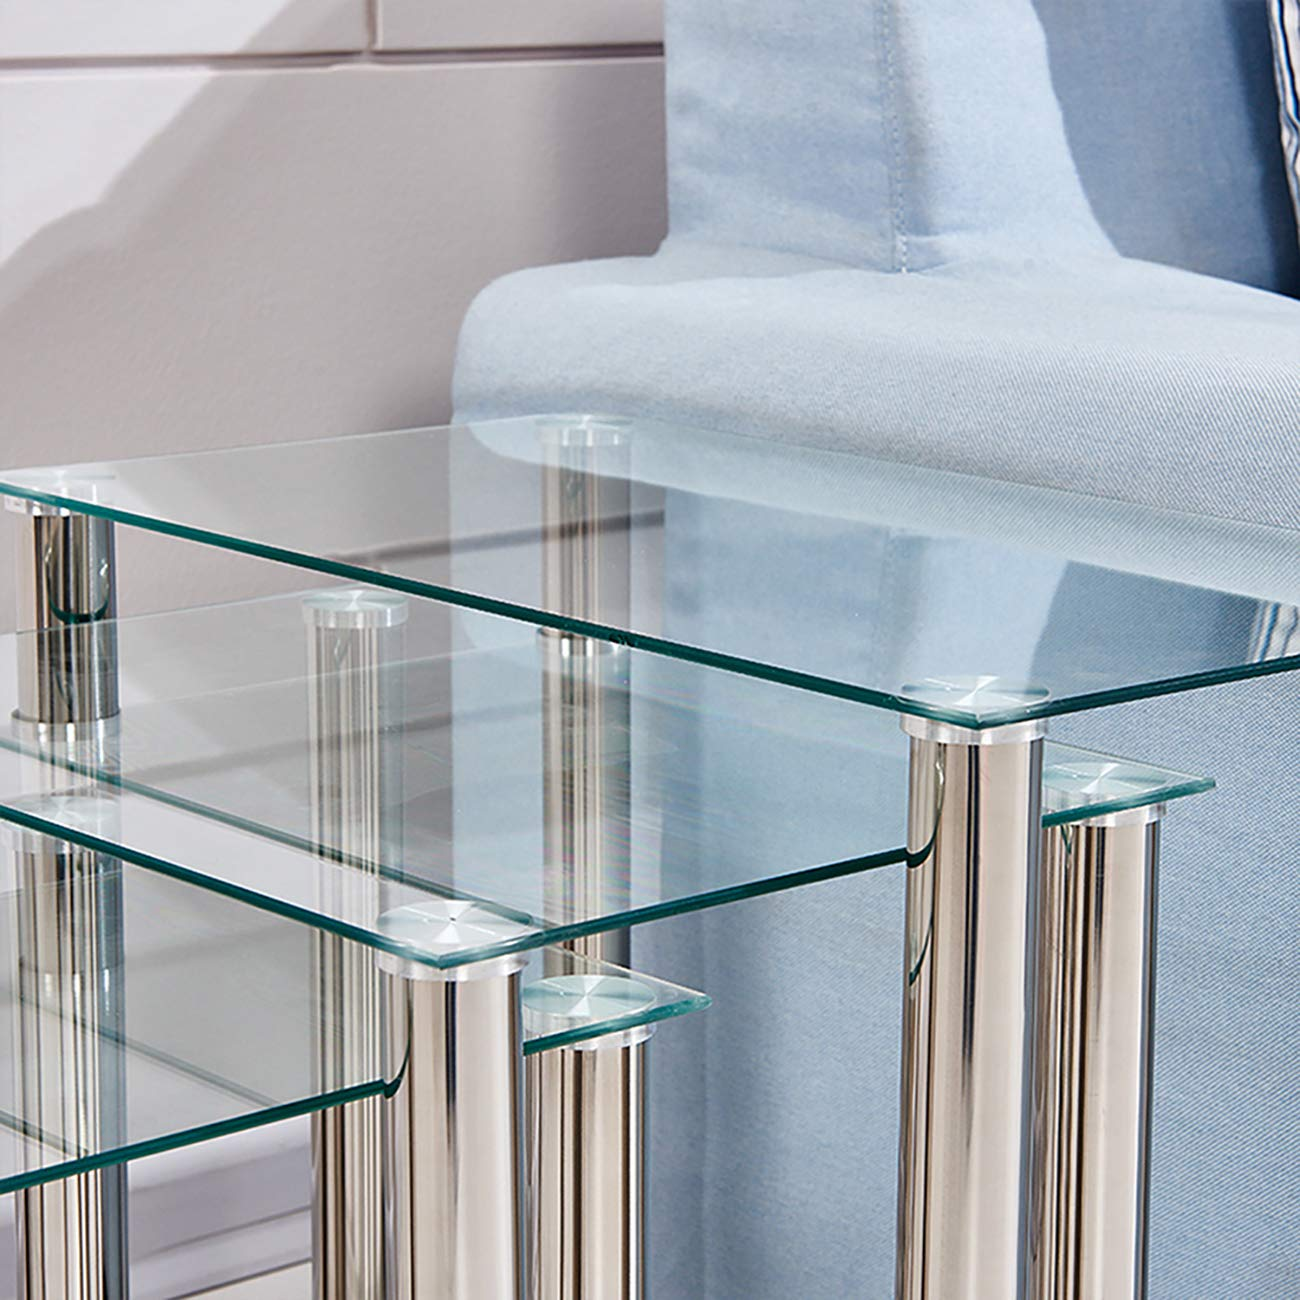 Ansley/&HosHo Black Glass Nesting Tables Glossy Nest of 3 Tables Rectangular with Chrome Legs Sofa Side Table End Table Coffee Table for Living Room Reception Room Limited Space